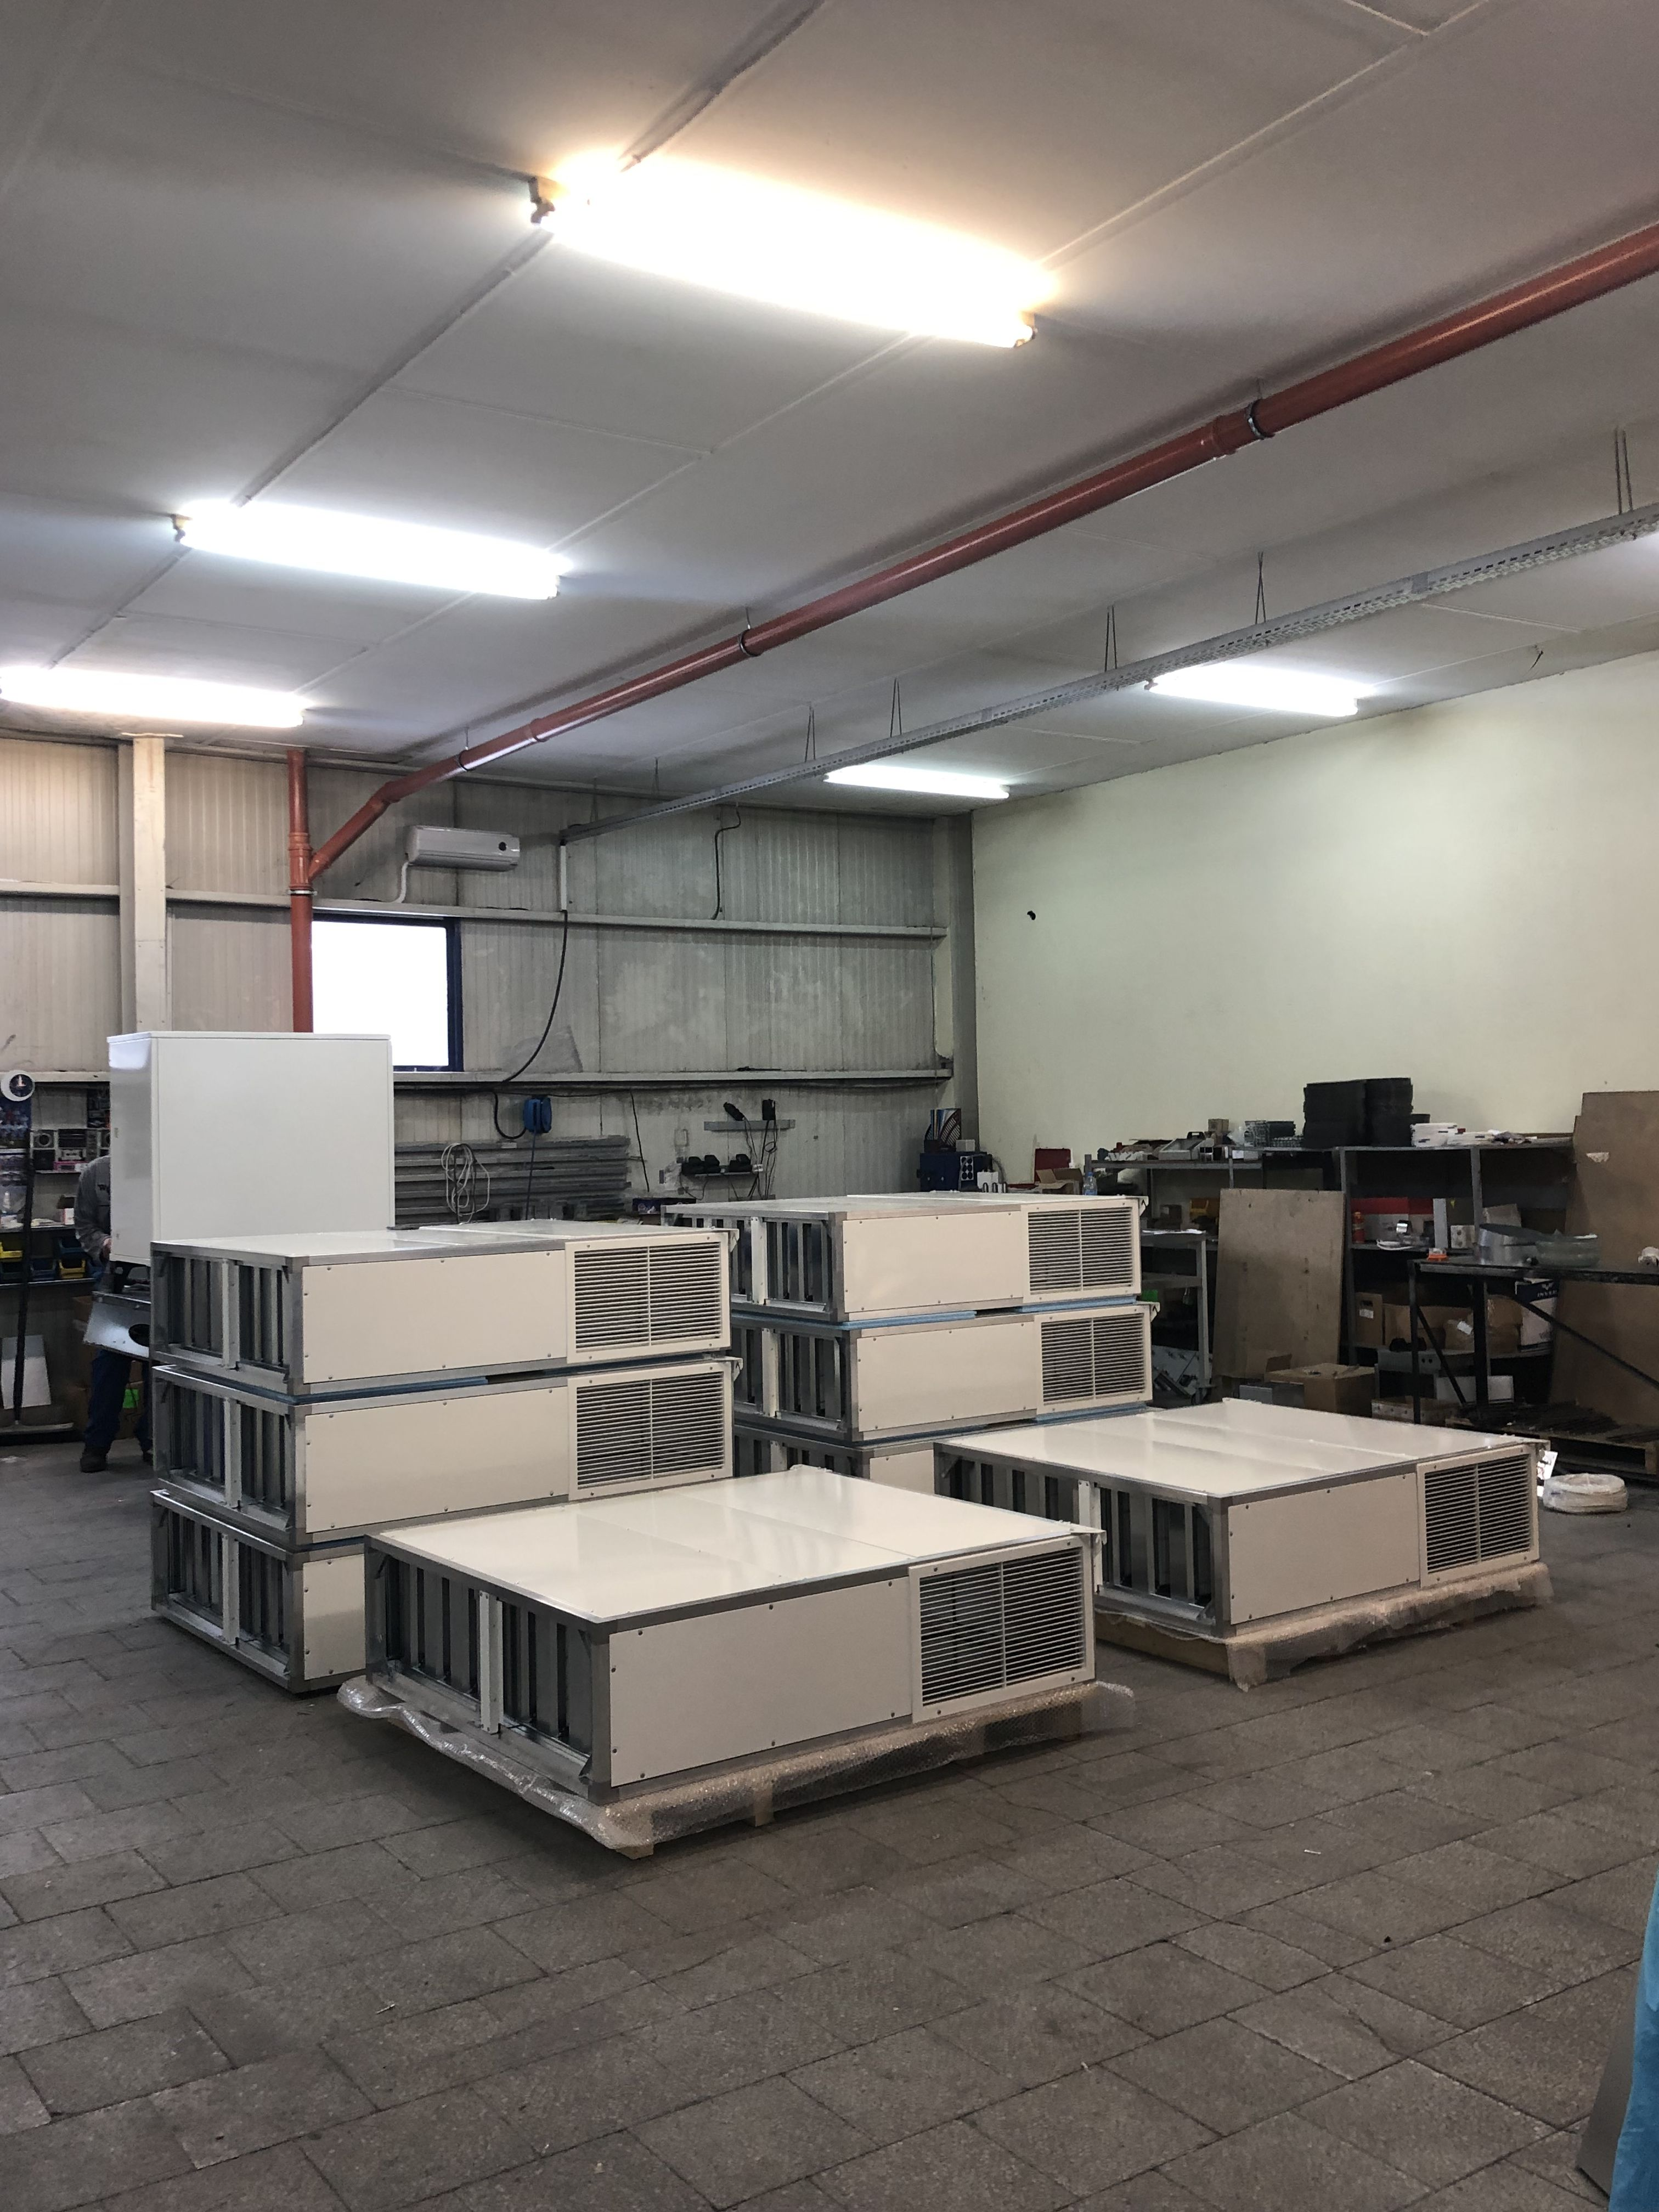 Heat recovery units TANGRA for school ventilation in Czech